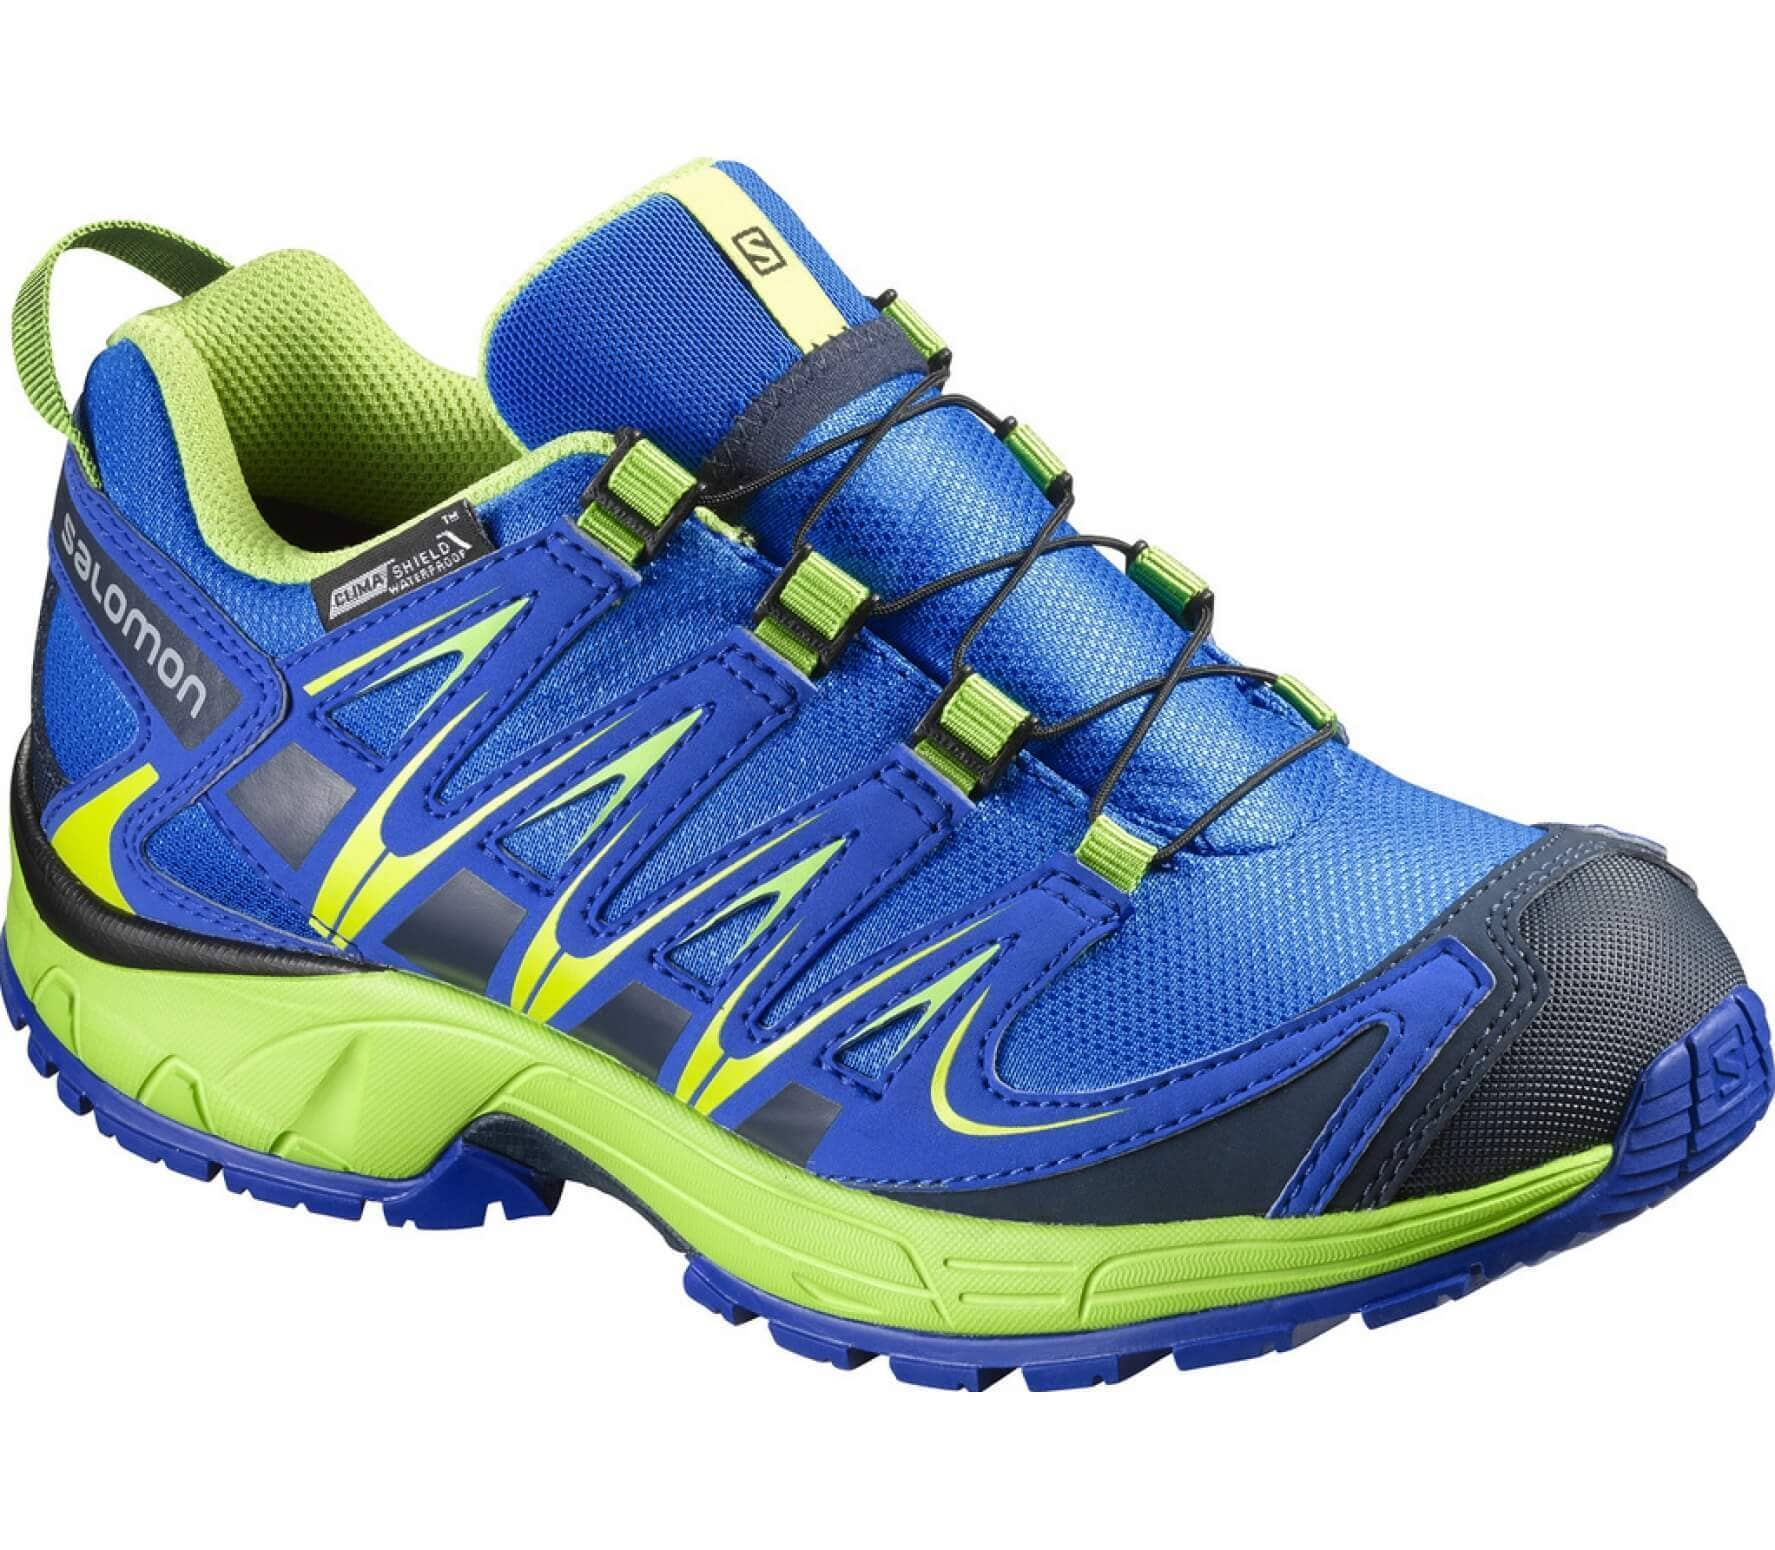 sports shoes cfd43 29a1a XA Pro 3D CSWP Children running shoes (blue light yellow)